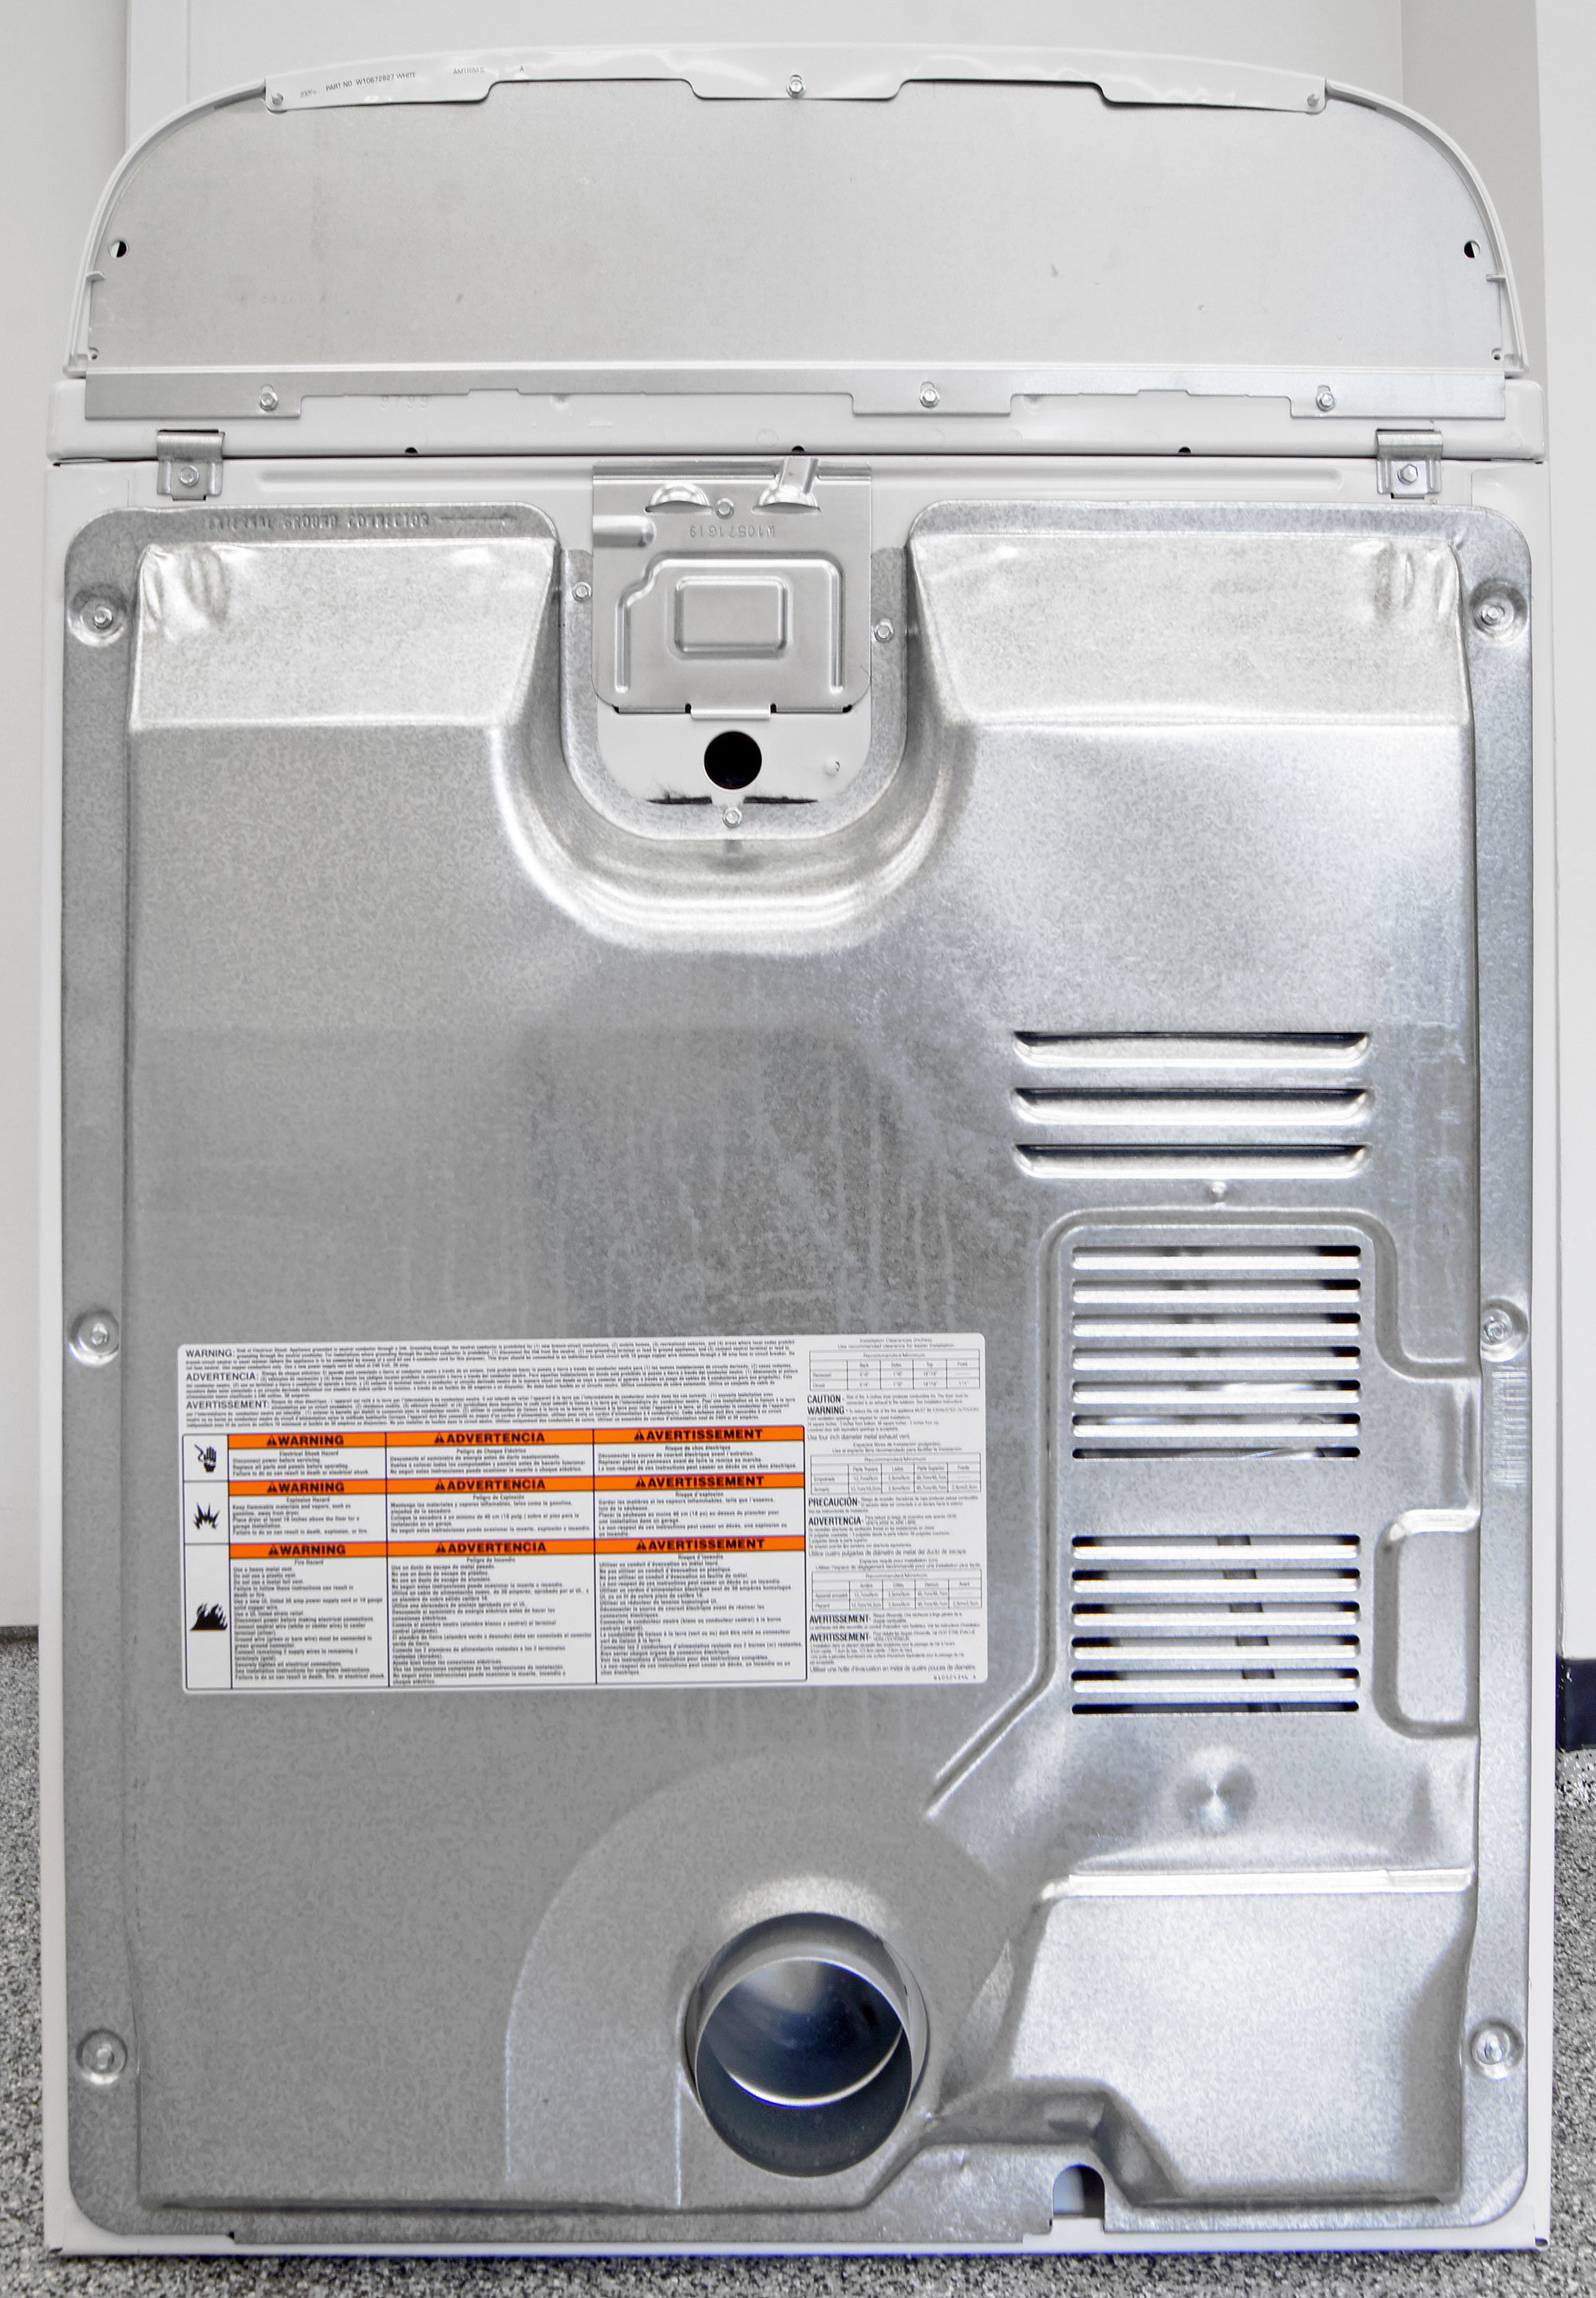 Did you really expect a budget dryer like the Whirlpool WED5000DW to have a steam hookup?